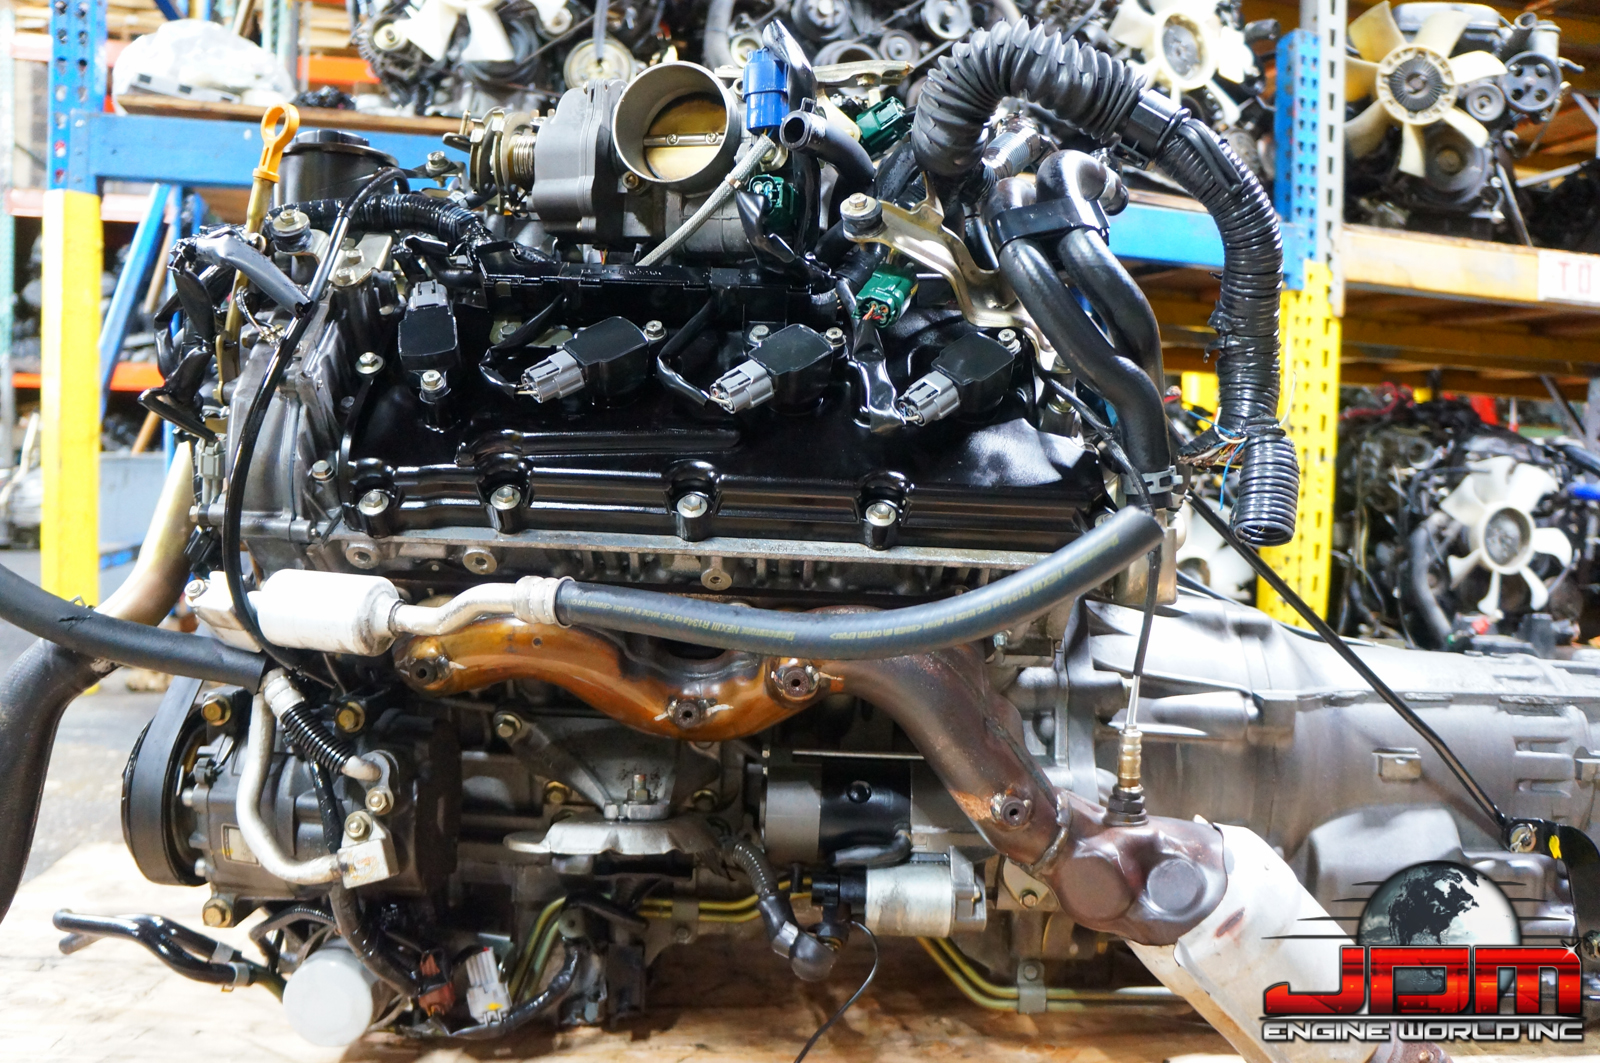 JDM VK45DE ENGINE WITH AUTOMATIC TRANSMISSION